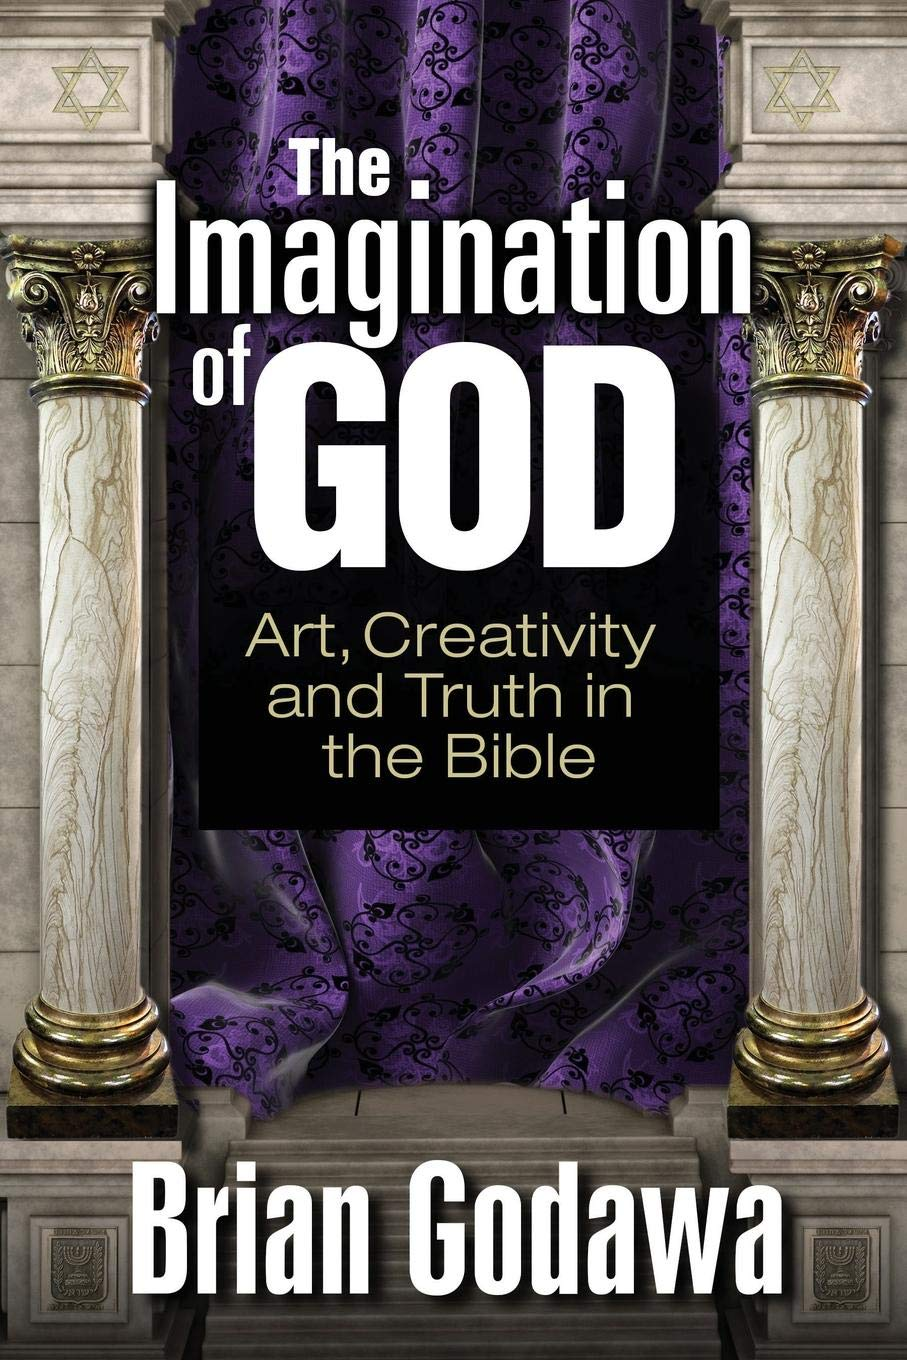 The Imagination of God: Art, Creativity and Truth in the